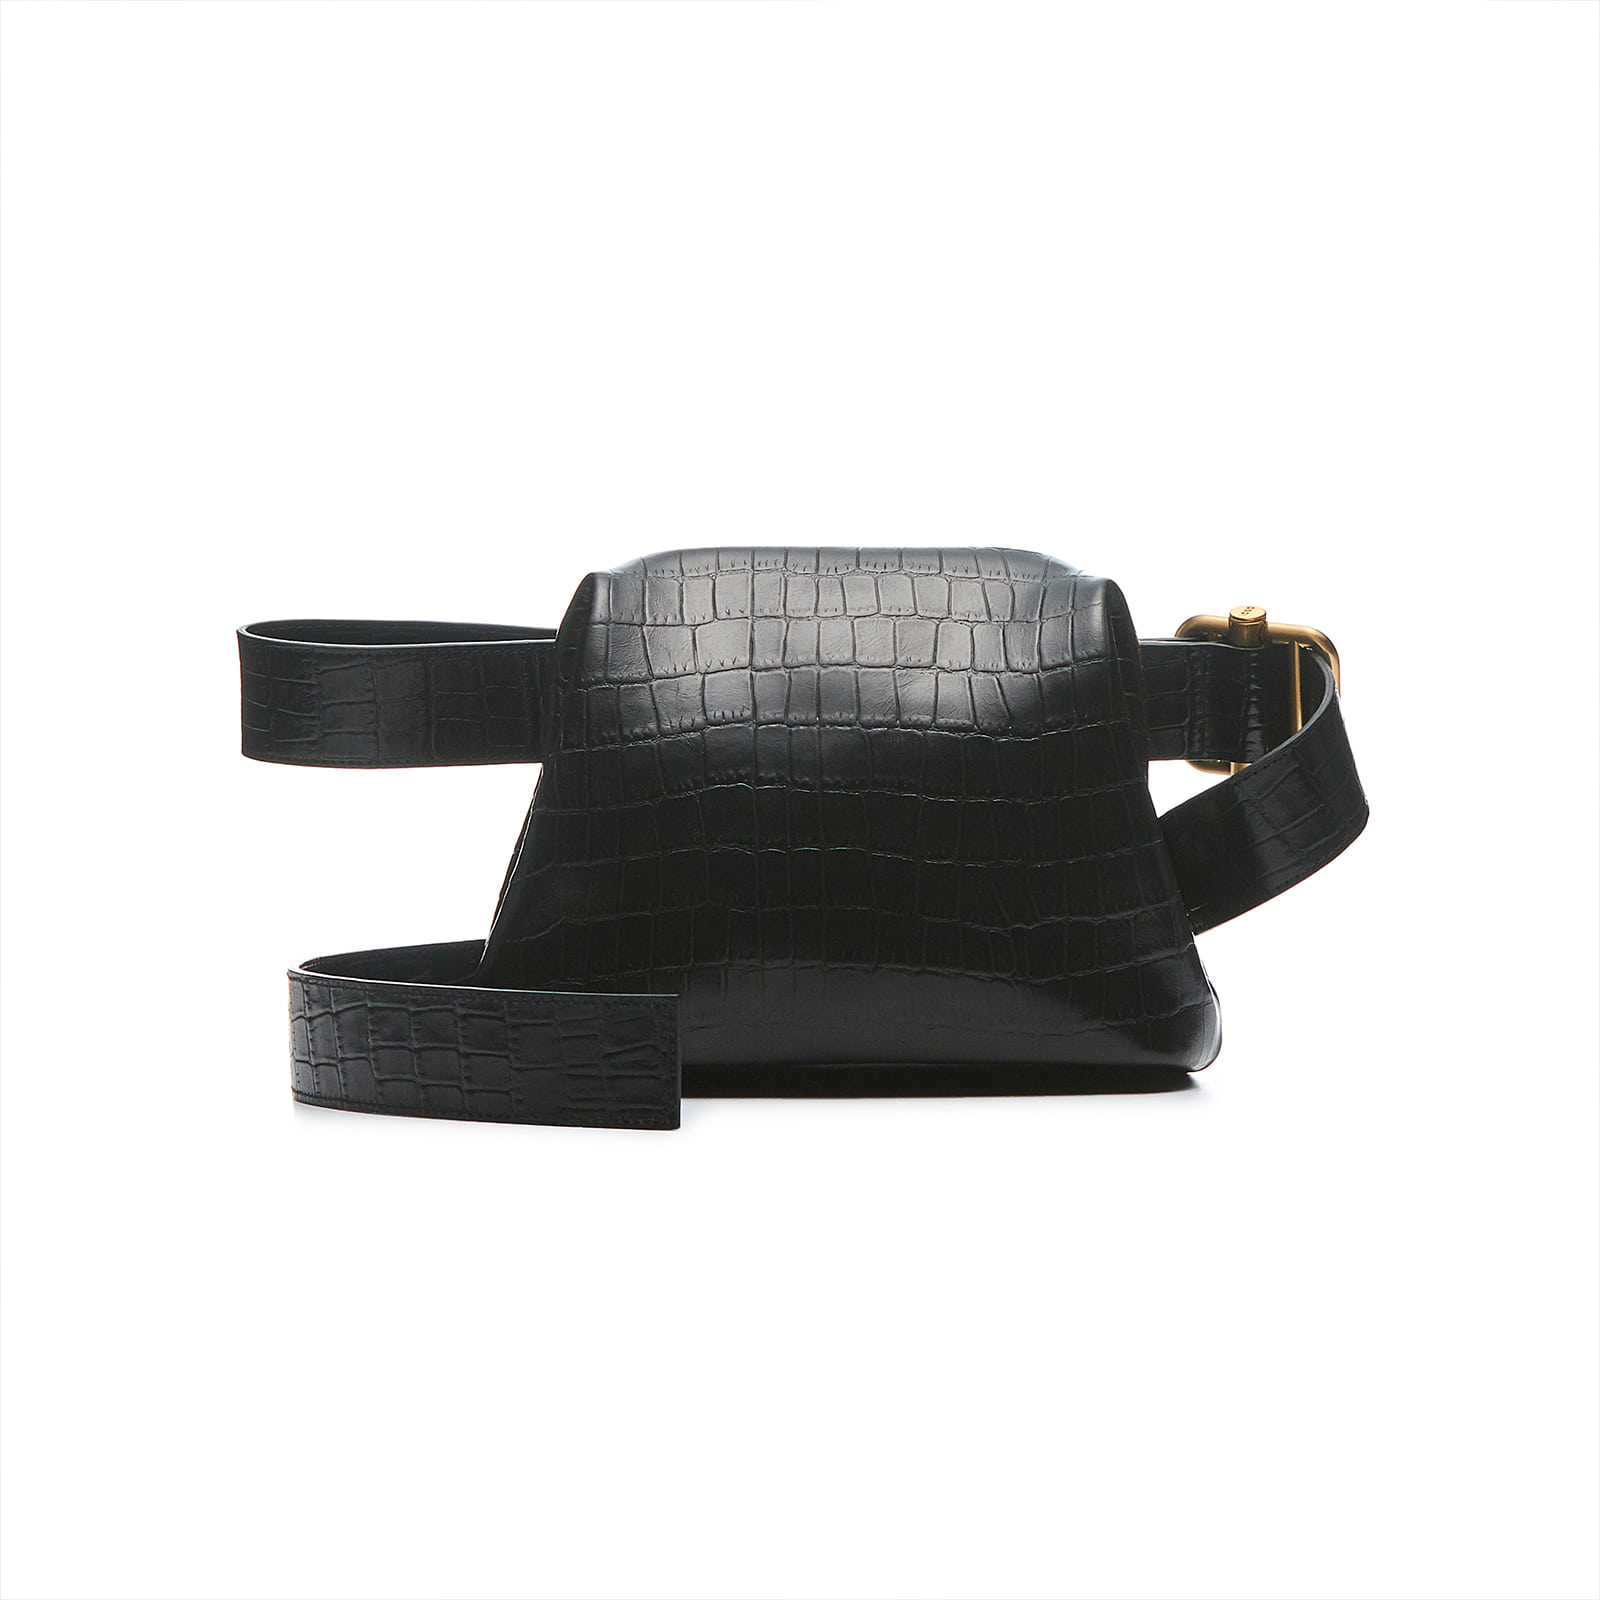 [EXCLUSIVE] MINI BROT [CROCO BLACK]